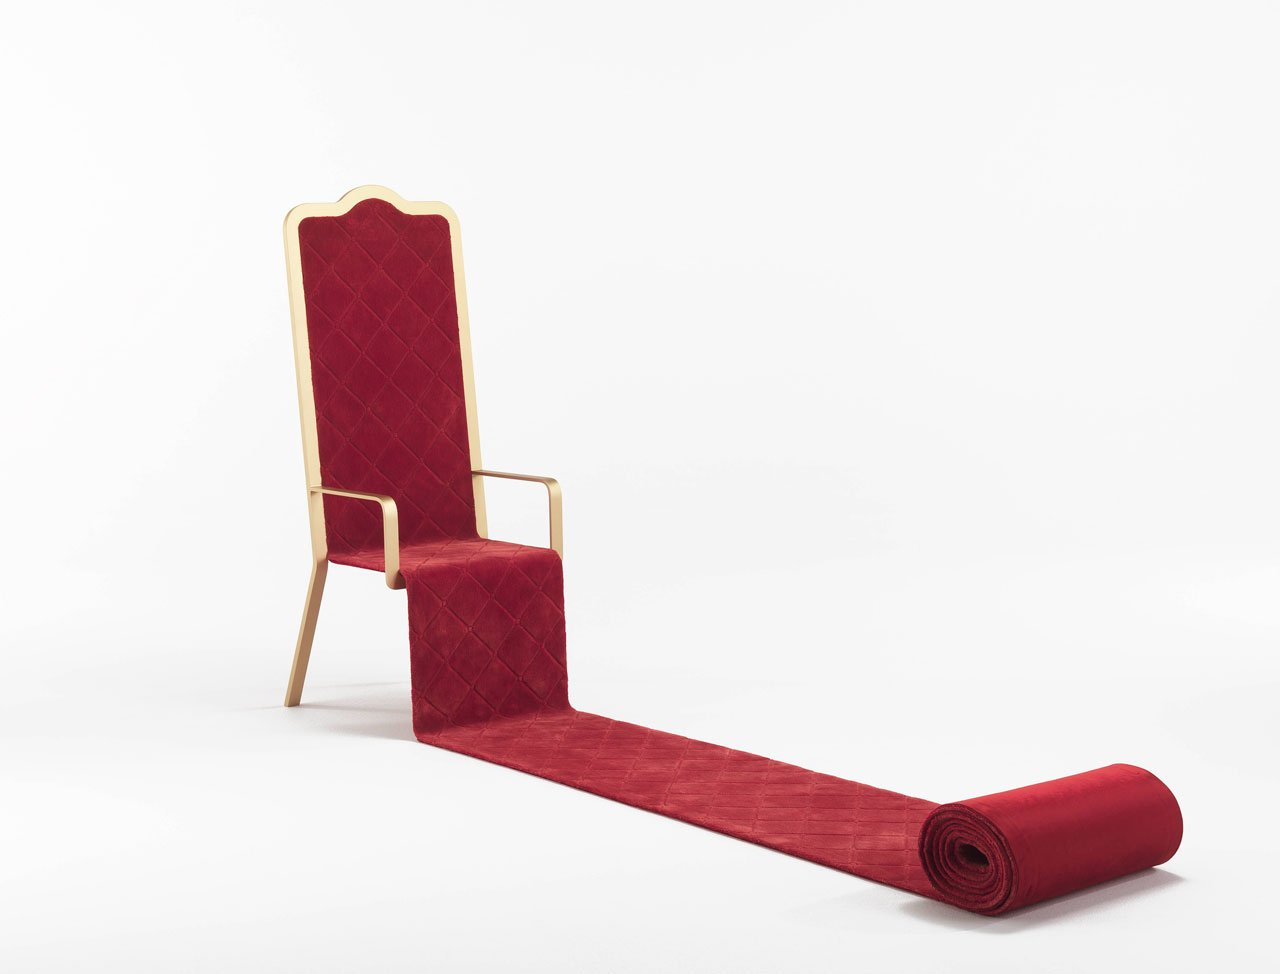 """OSFORTH throne by Emanuele Magini for for JCP Universe.Materials: hand-woven red carpet in Bamboo Silk on iron structure in matte """"tailor made"""" gold finish.Dimensions (H x W x D): 150cm x 59cm x 62-500cm.Photo by Silvio Macchi© JCP Universe."""